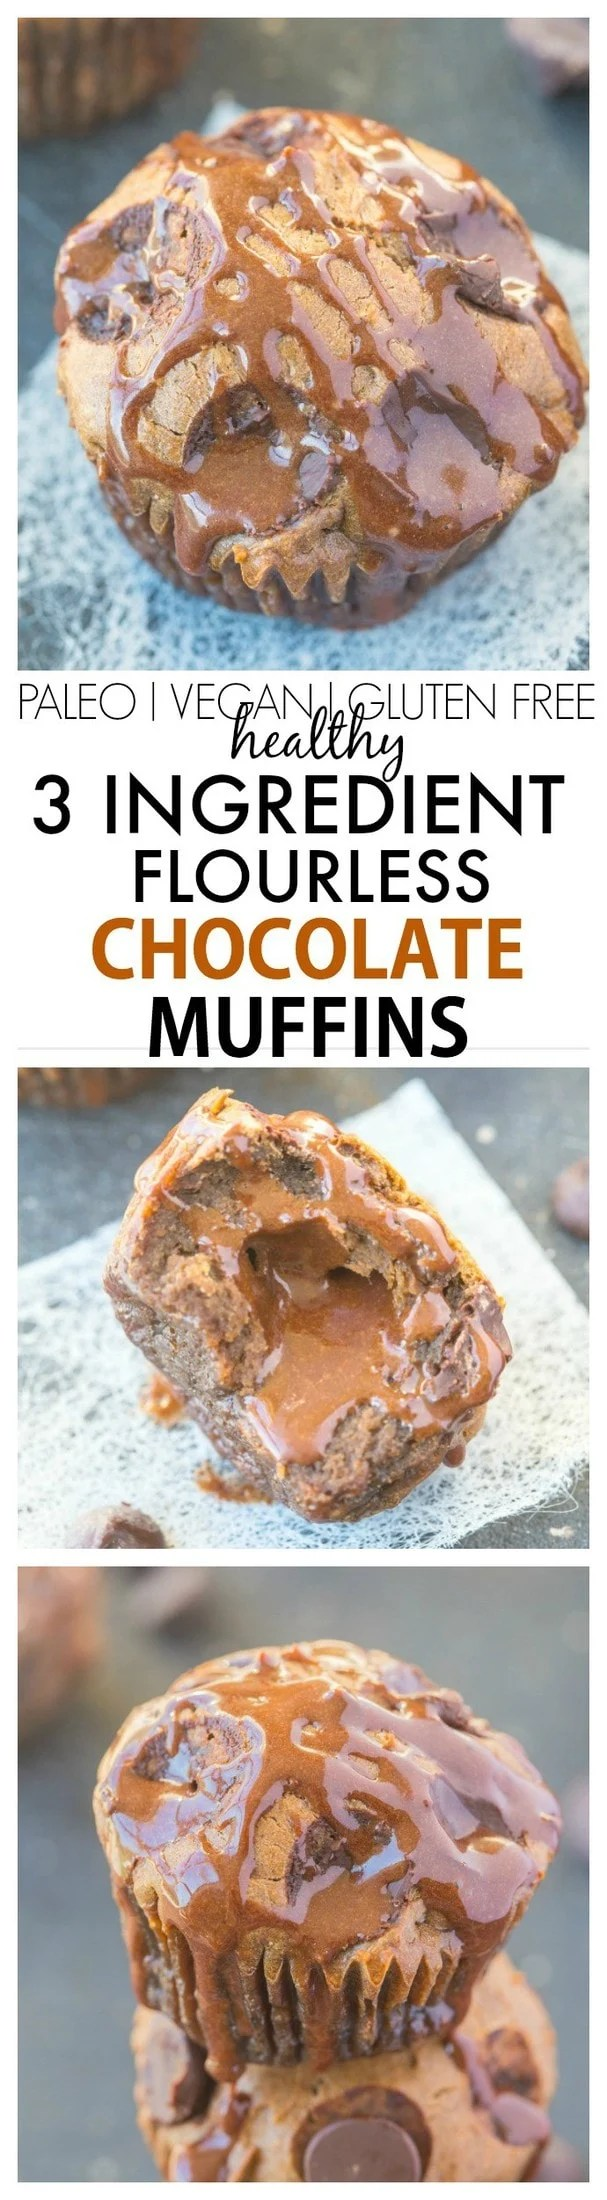 Just THREE ingredients are needed to make these healthy flourless chocolate muffins- No butter, oil, flour and the option to add sugar! {gluten free, paleo, vegan options}